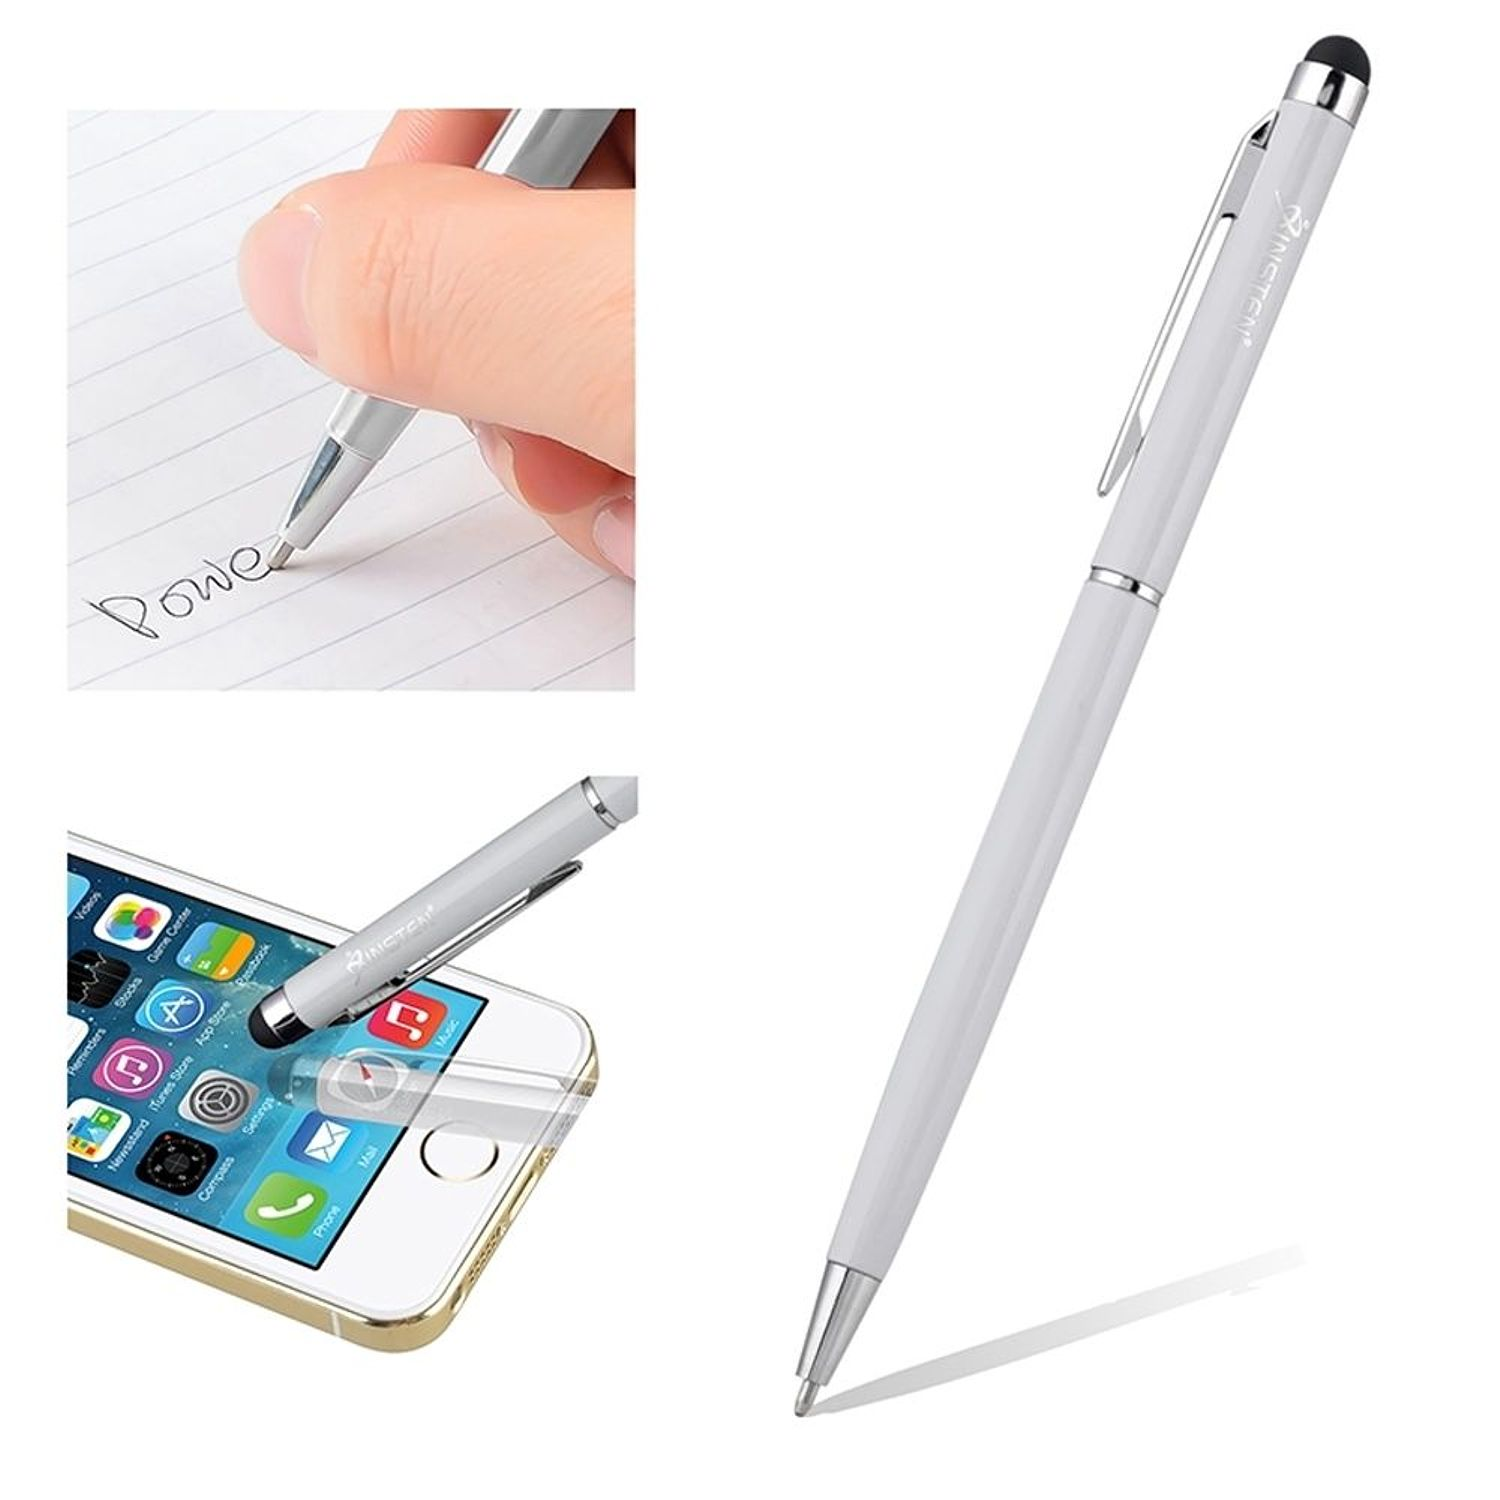 Insten Universal Silver 2in1 Capacitive Touch Screen Stylus with Ball Point Pen For Tab Tablet CellPhone iPhone 7 6 Plus 6s SE 5 5s iPad Air Pro Mini Samsung Galaxy J7 J5 J3 J1 Grand Prime Core On5